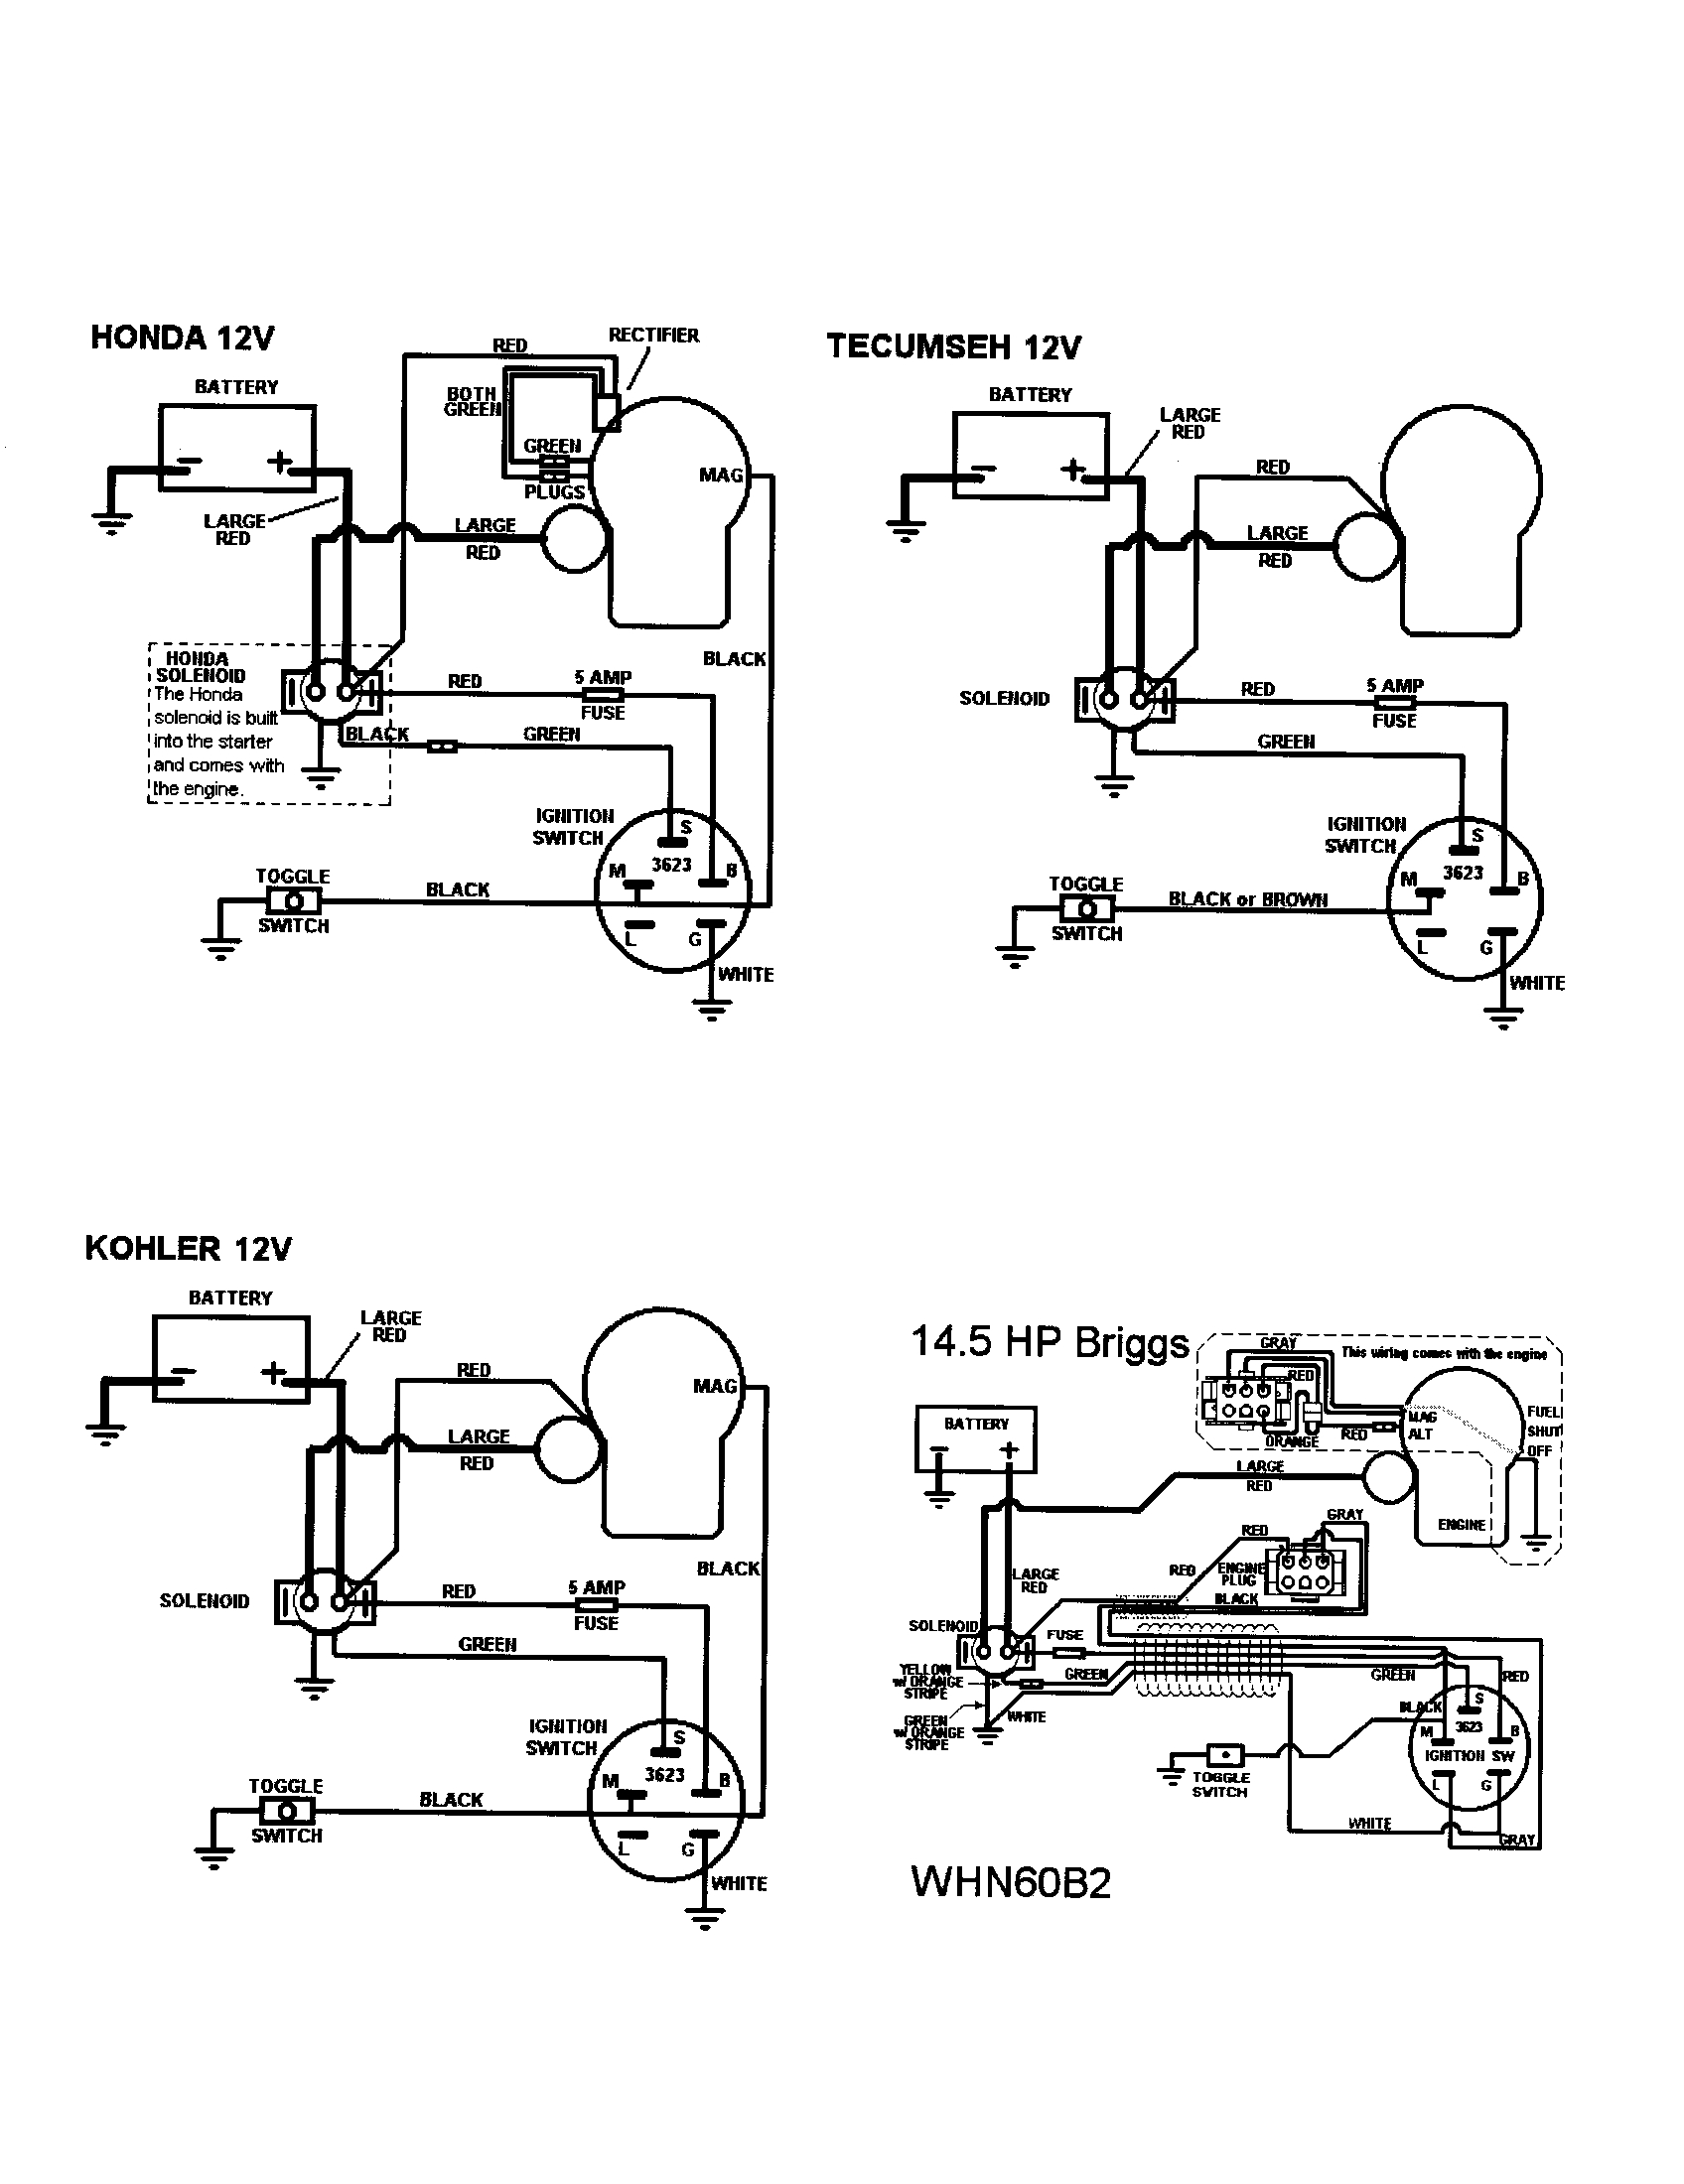 Cub cadet parts diagram fuse new wiring diagram 2018 awesome cub cadet ltx 1045 parts diagram ideas best image wire cub cadet oil new holland tractor wiring diagram cub cadet alternator on cub cadet parts pooptronica